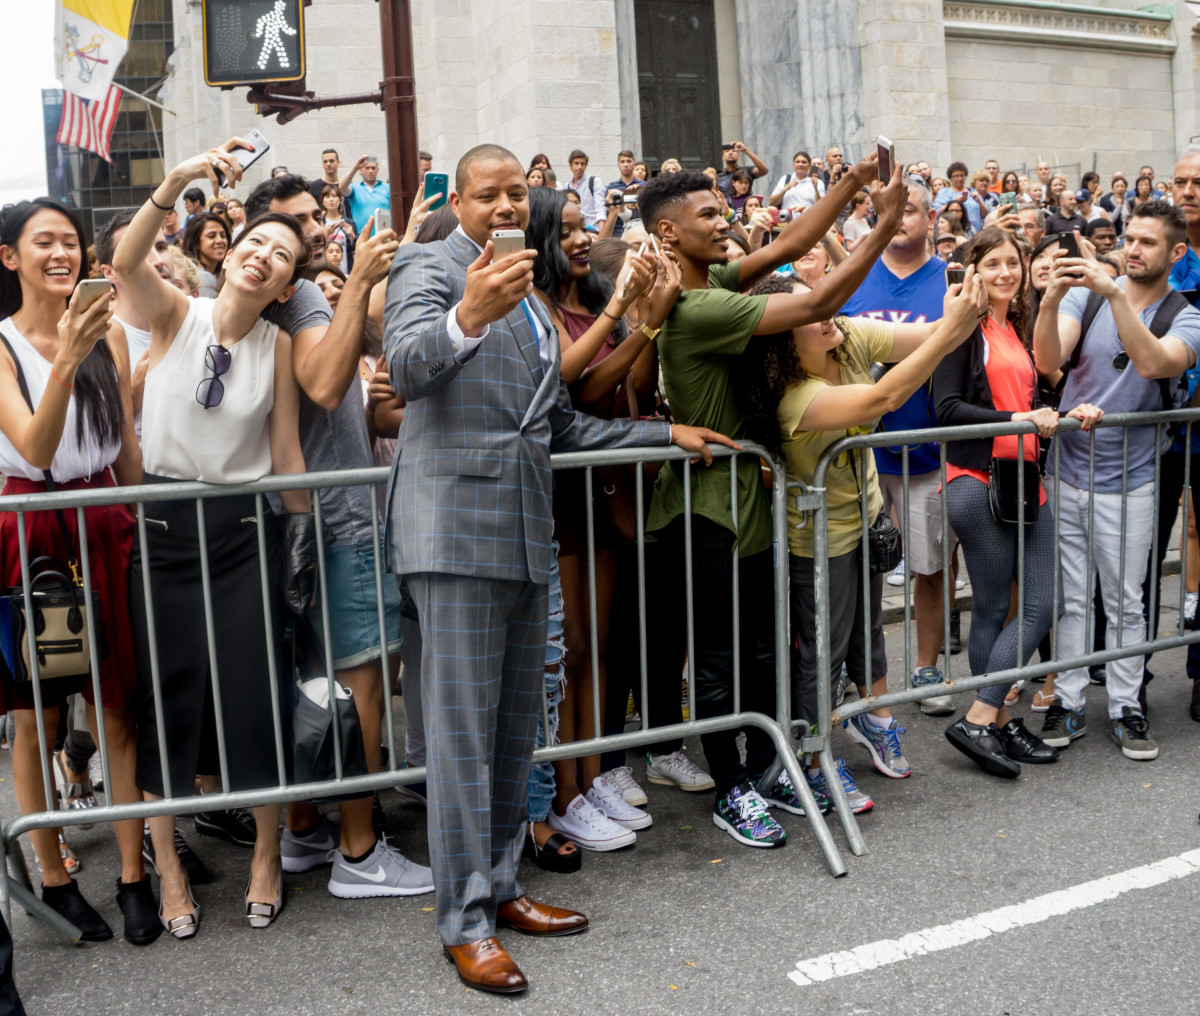 Lucious, er, Howard takes a selfie with the crowd. Photo: Photo by Steven Henry/Getty Images